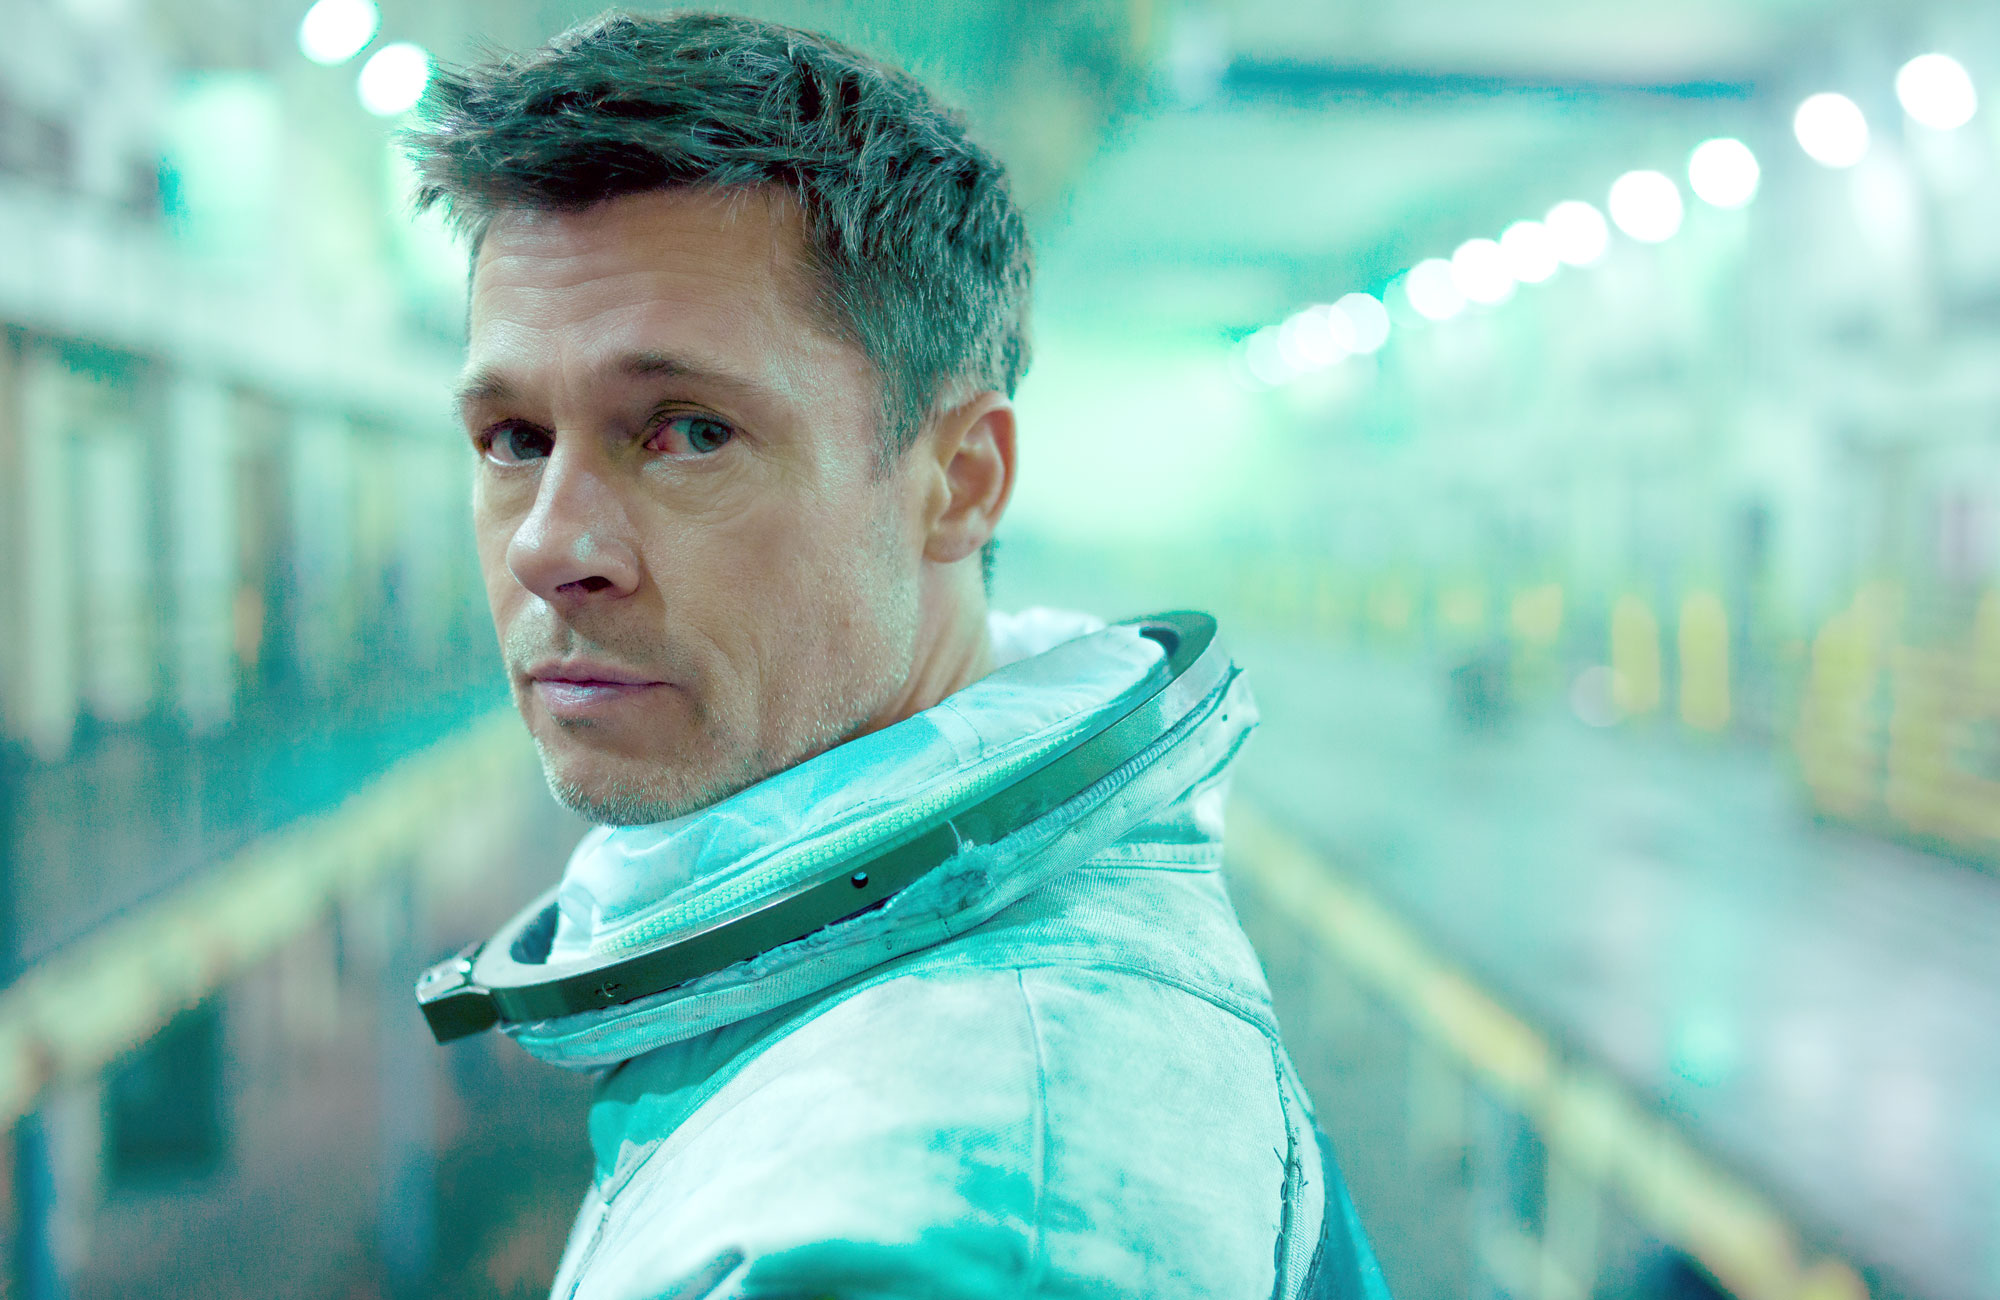 Ad Astra' Review: Brad Pitt Soars in Somber Space Drama